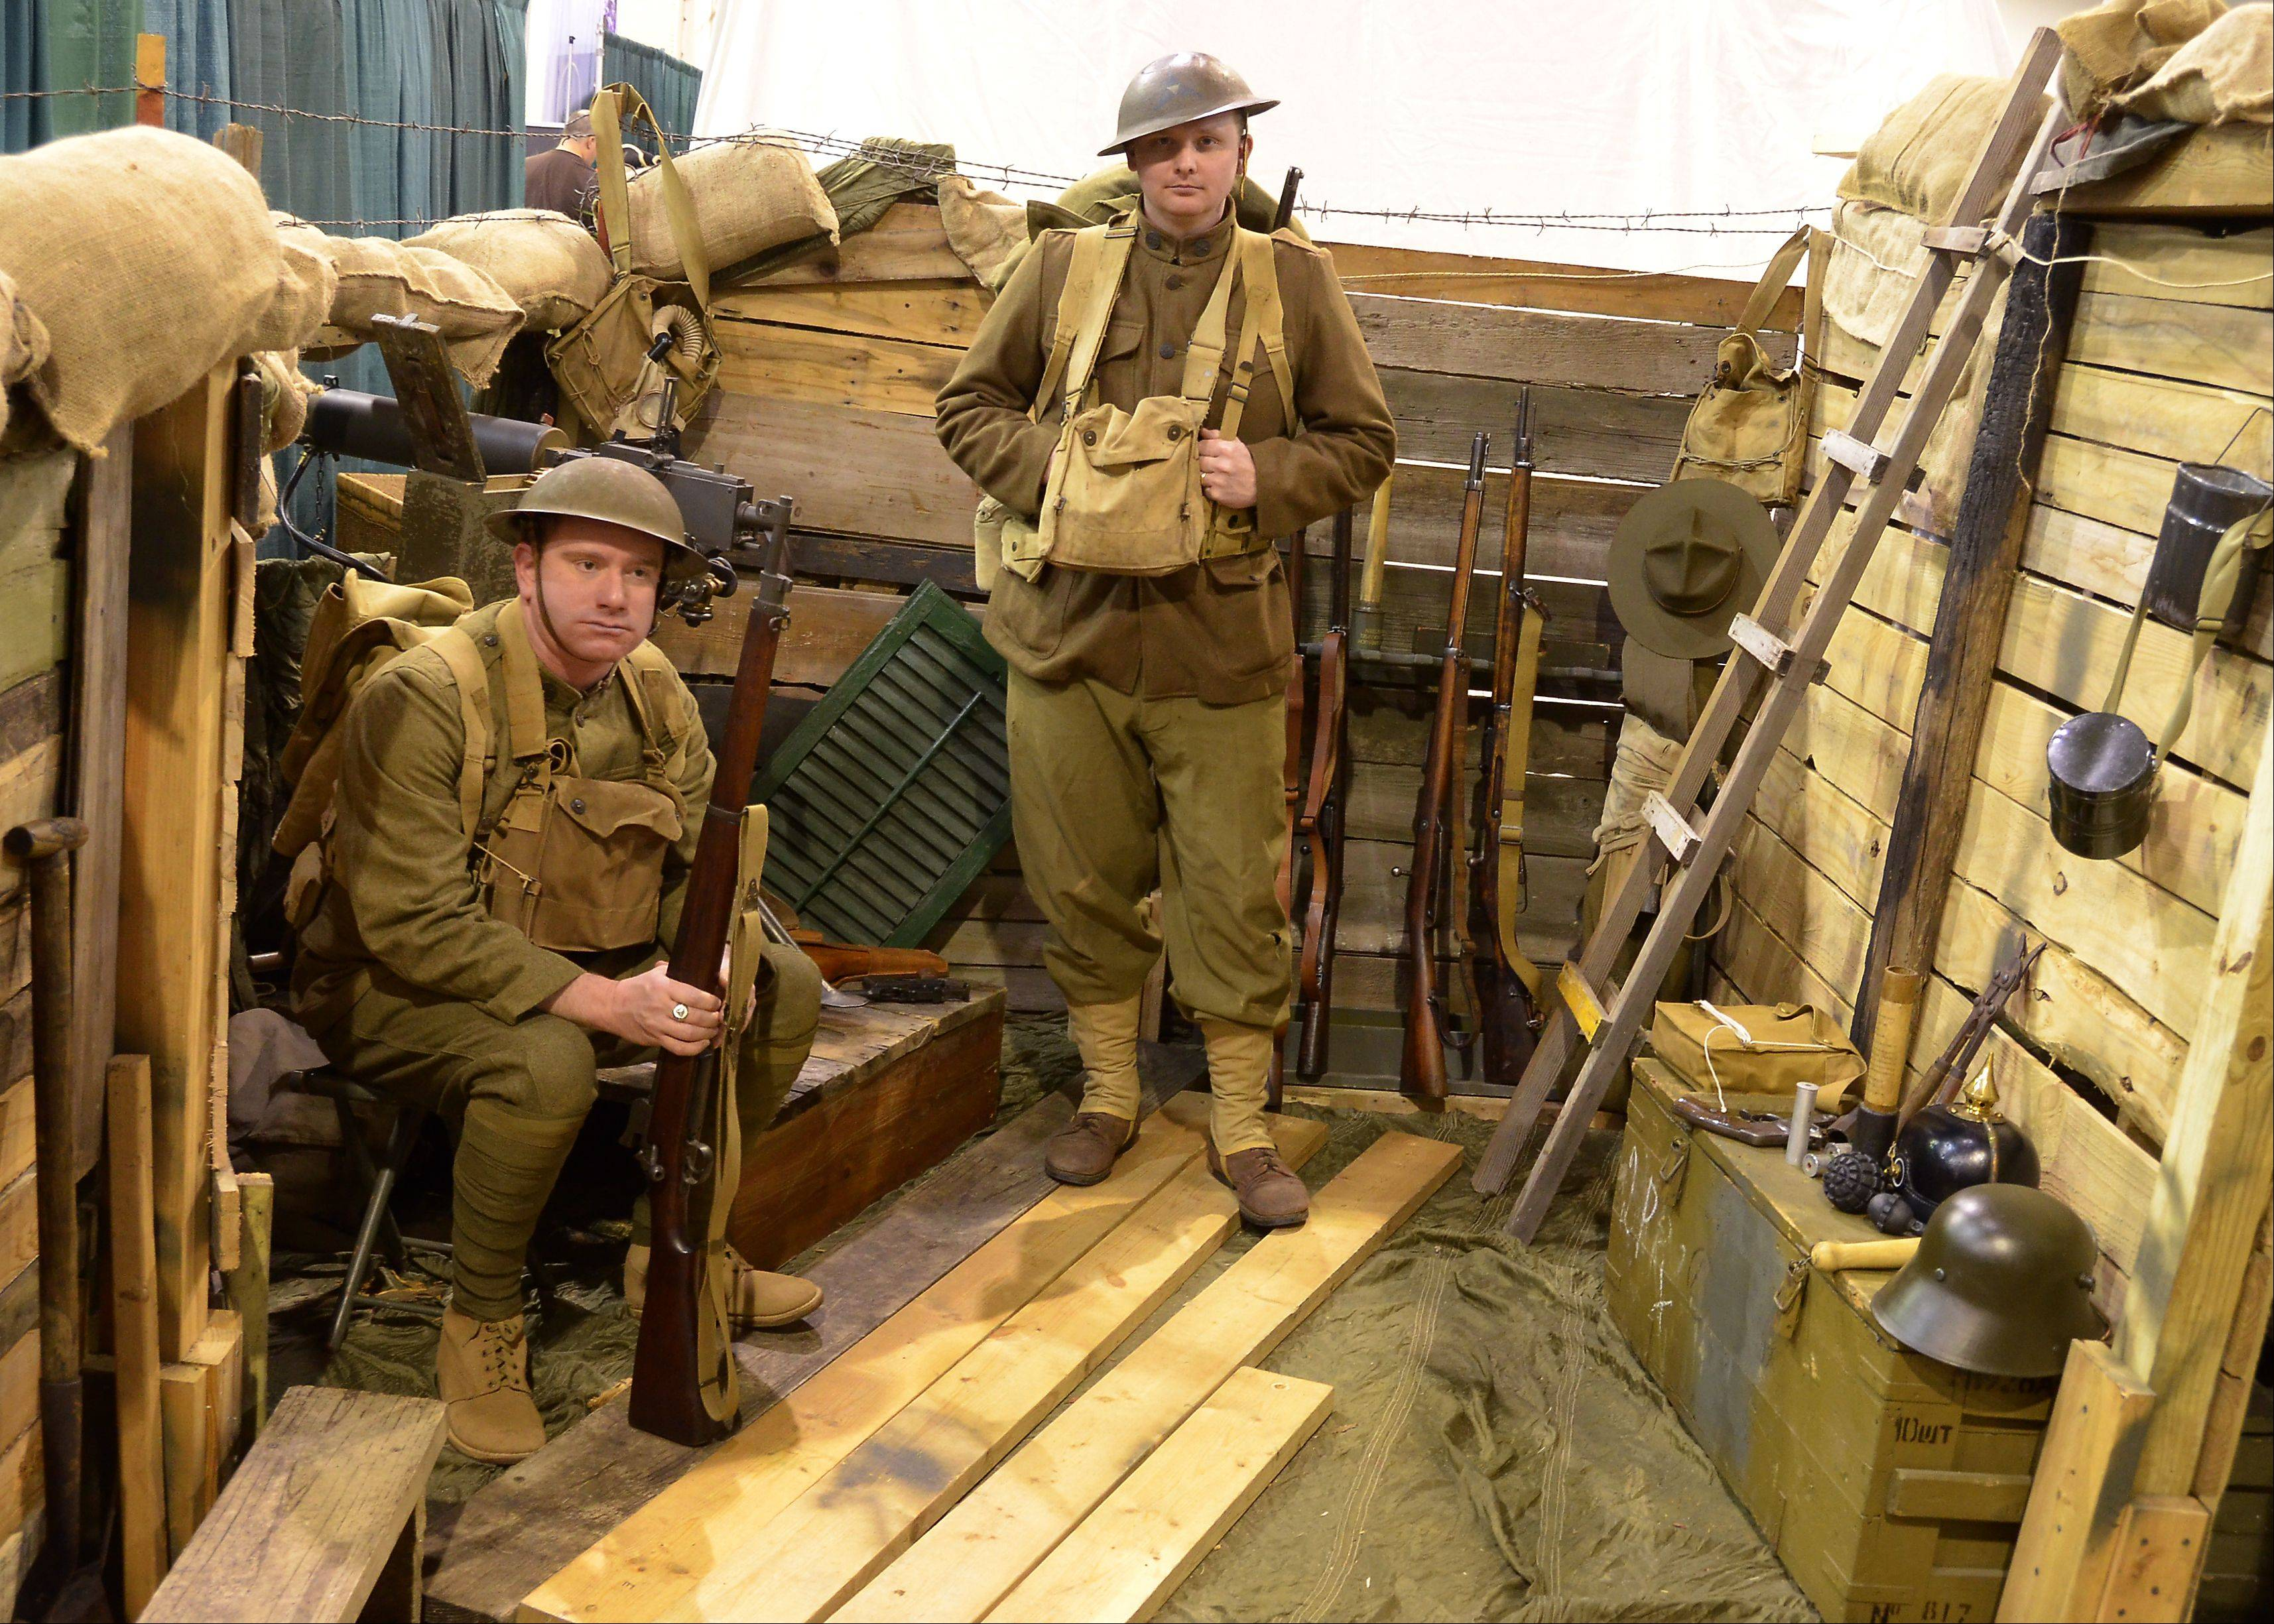 George Bruckert, left, of Lisle and Bill Thurston of Oswego spent some time in a World War l trench at a previous edition of the Military History Fest convention at Pheasant Run Resort in St. Charles.